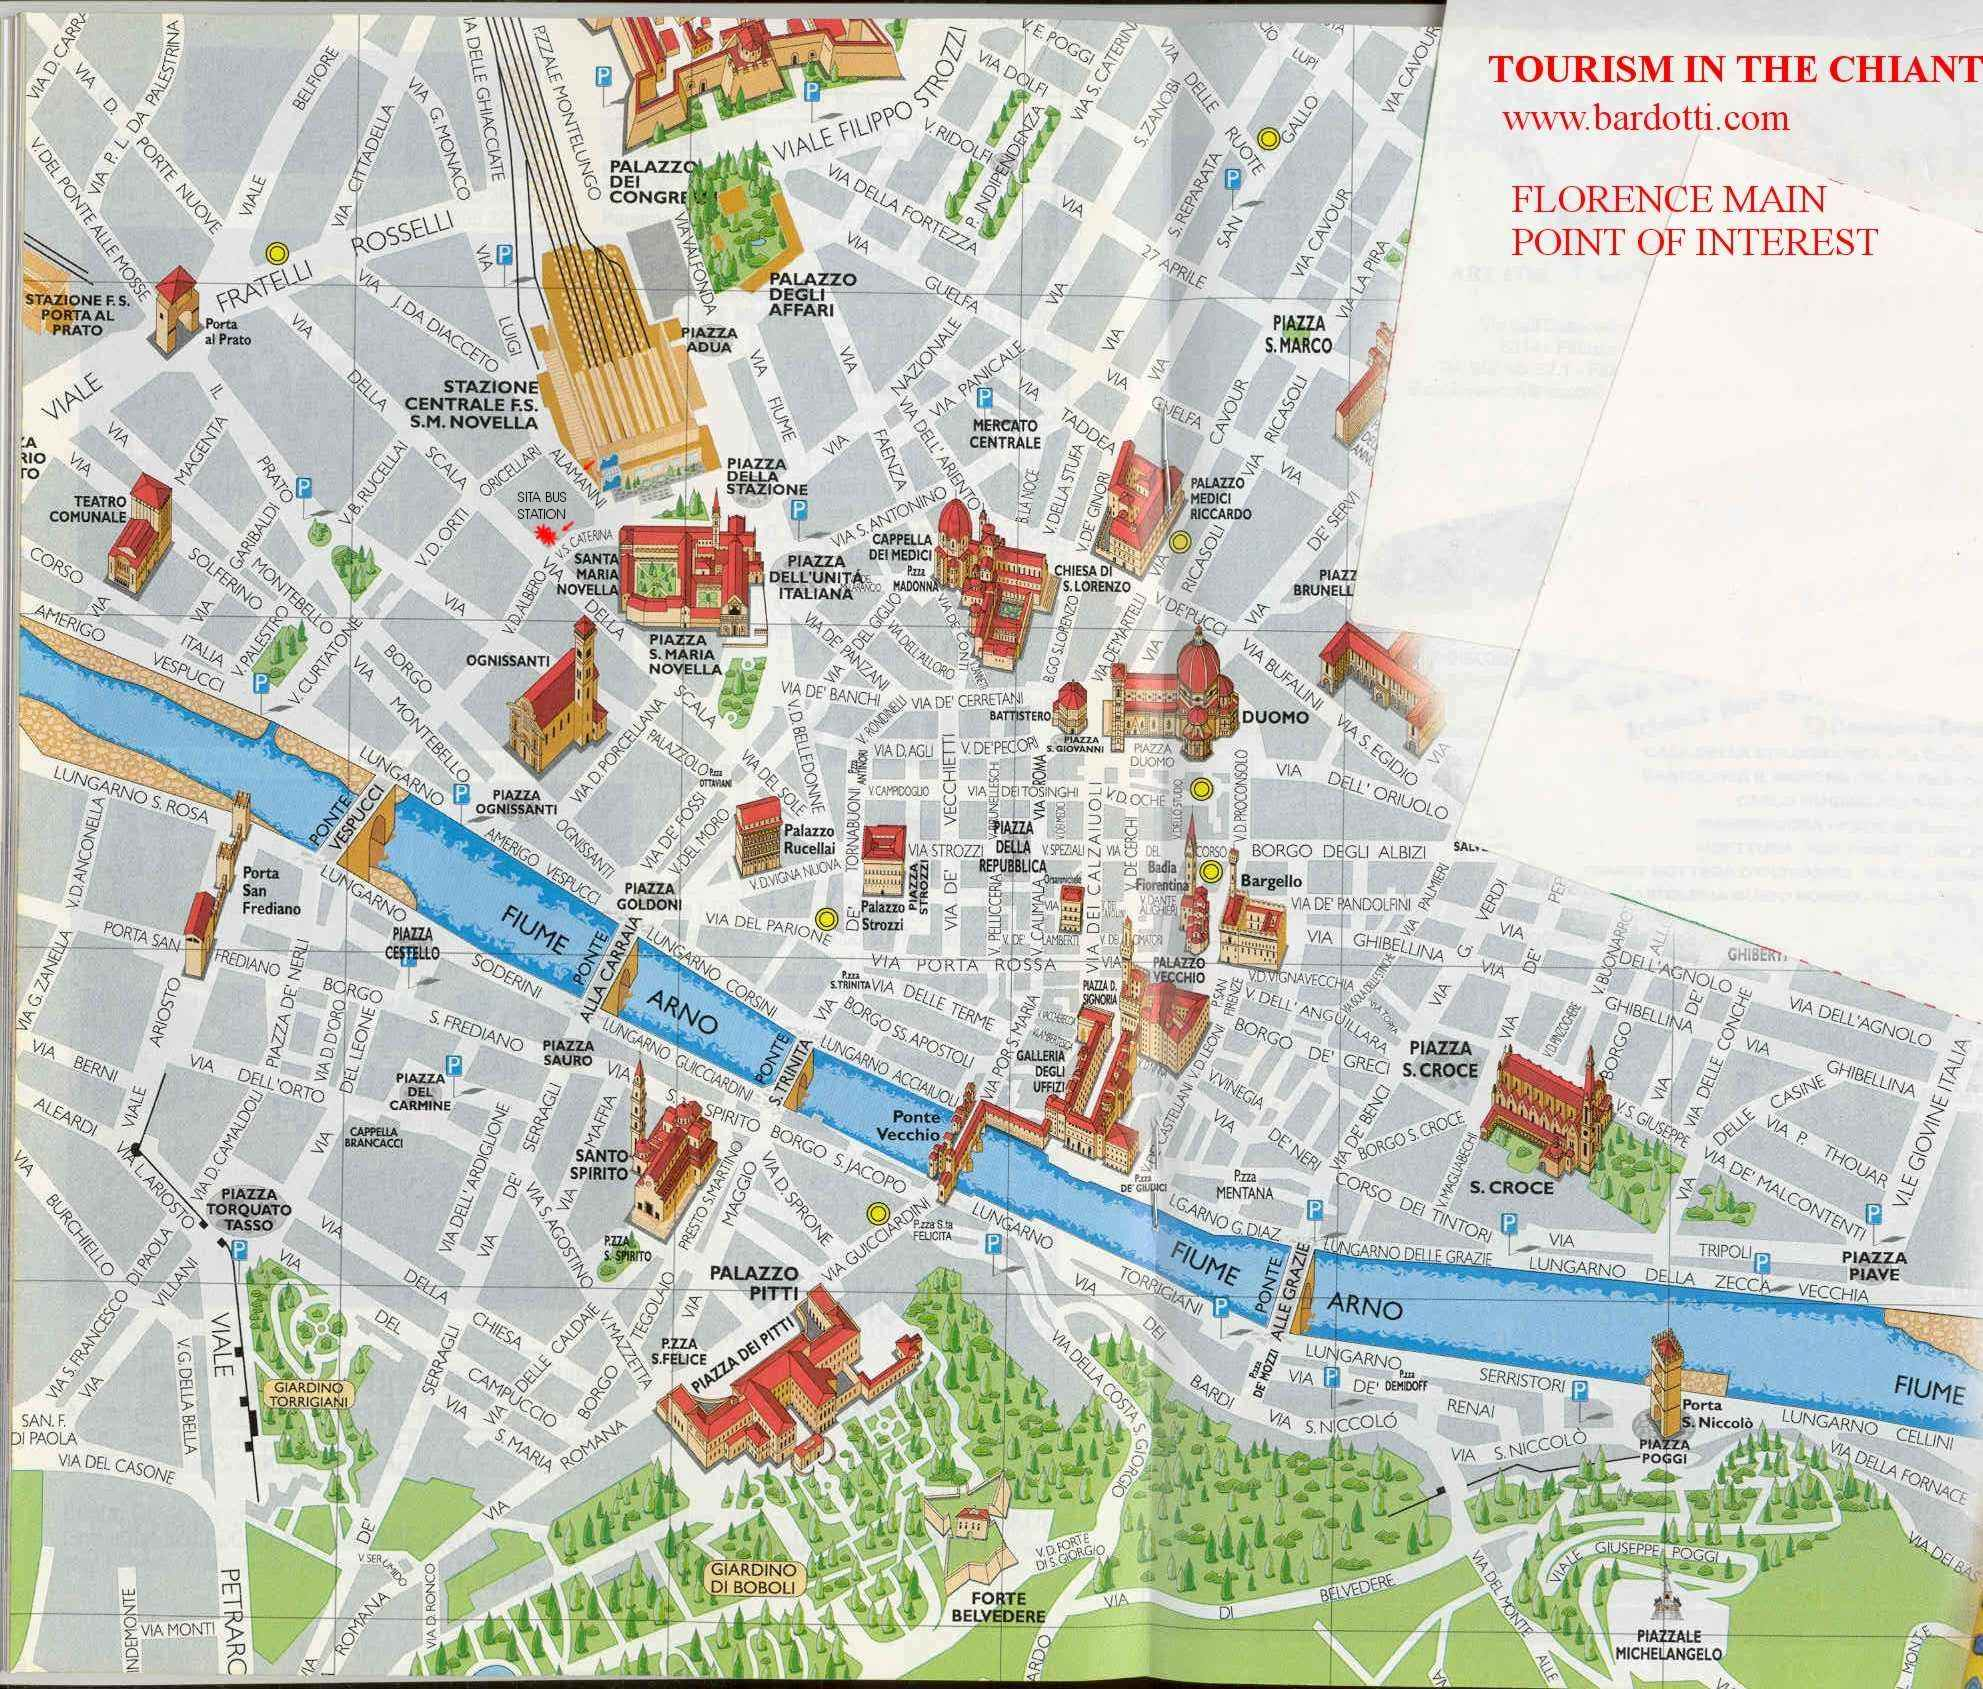 Tourism in the Chianti Guide to museums in Florence and main – Florence Tourist Attractions Map